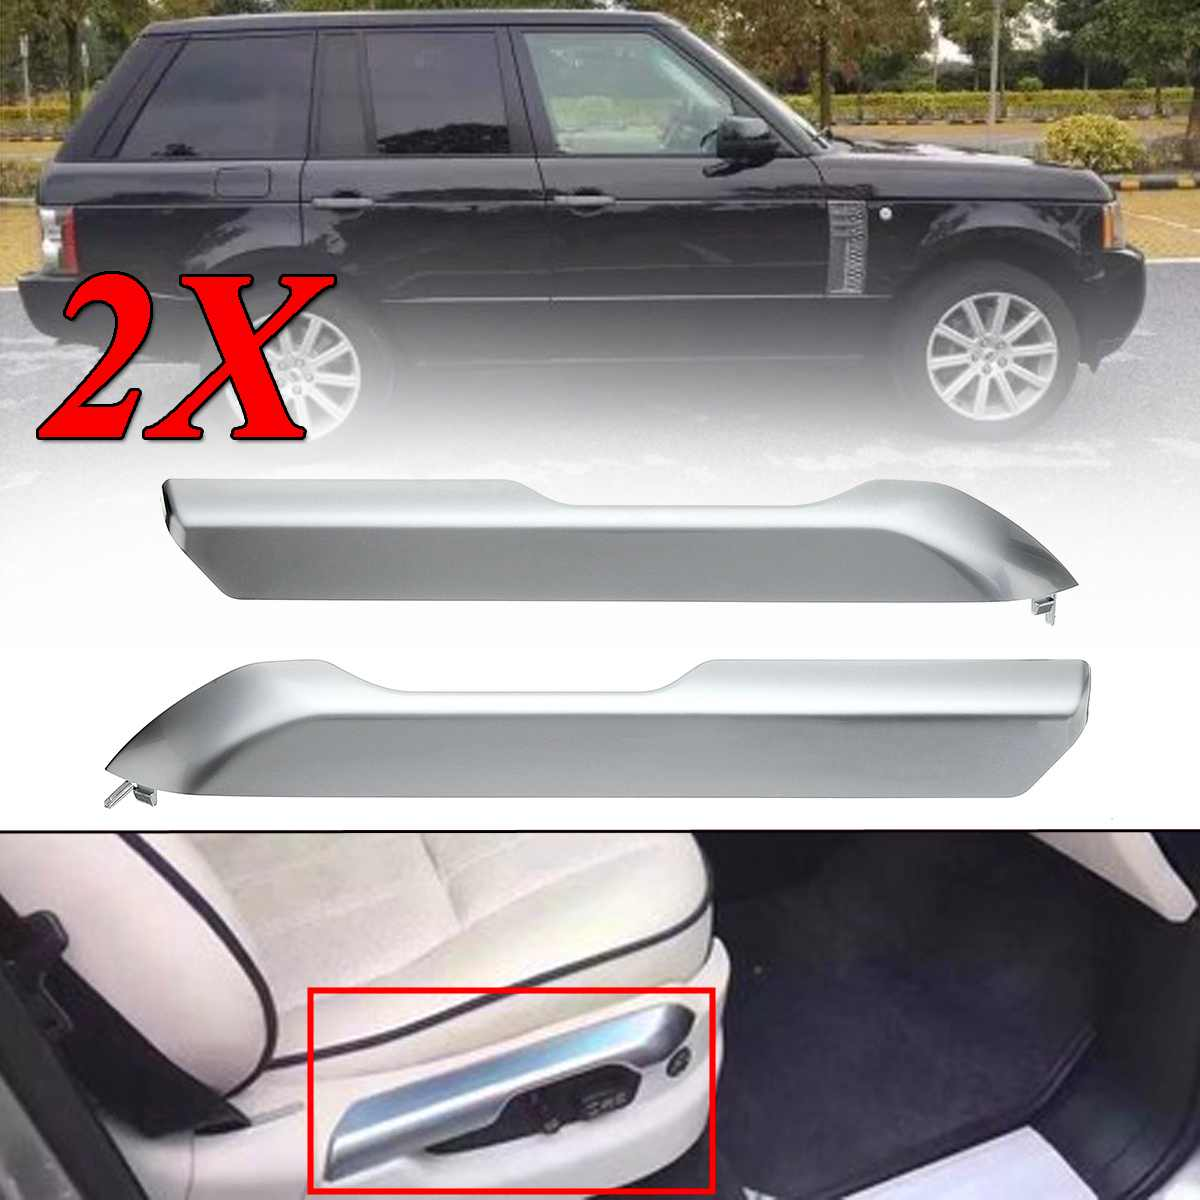 2pcs New Car Front Seat Cushion Valance Chrome Cover Trim For Land Rover Range Rover 2004-2012 Interior Mouldings